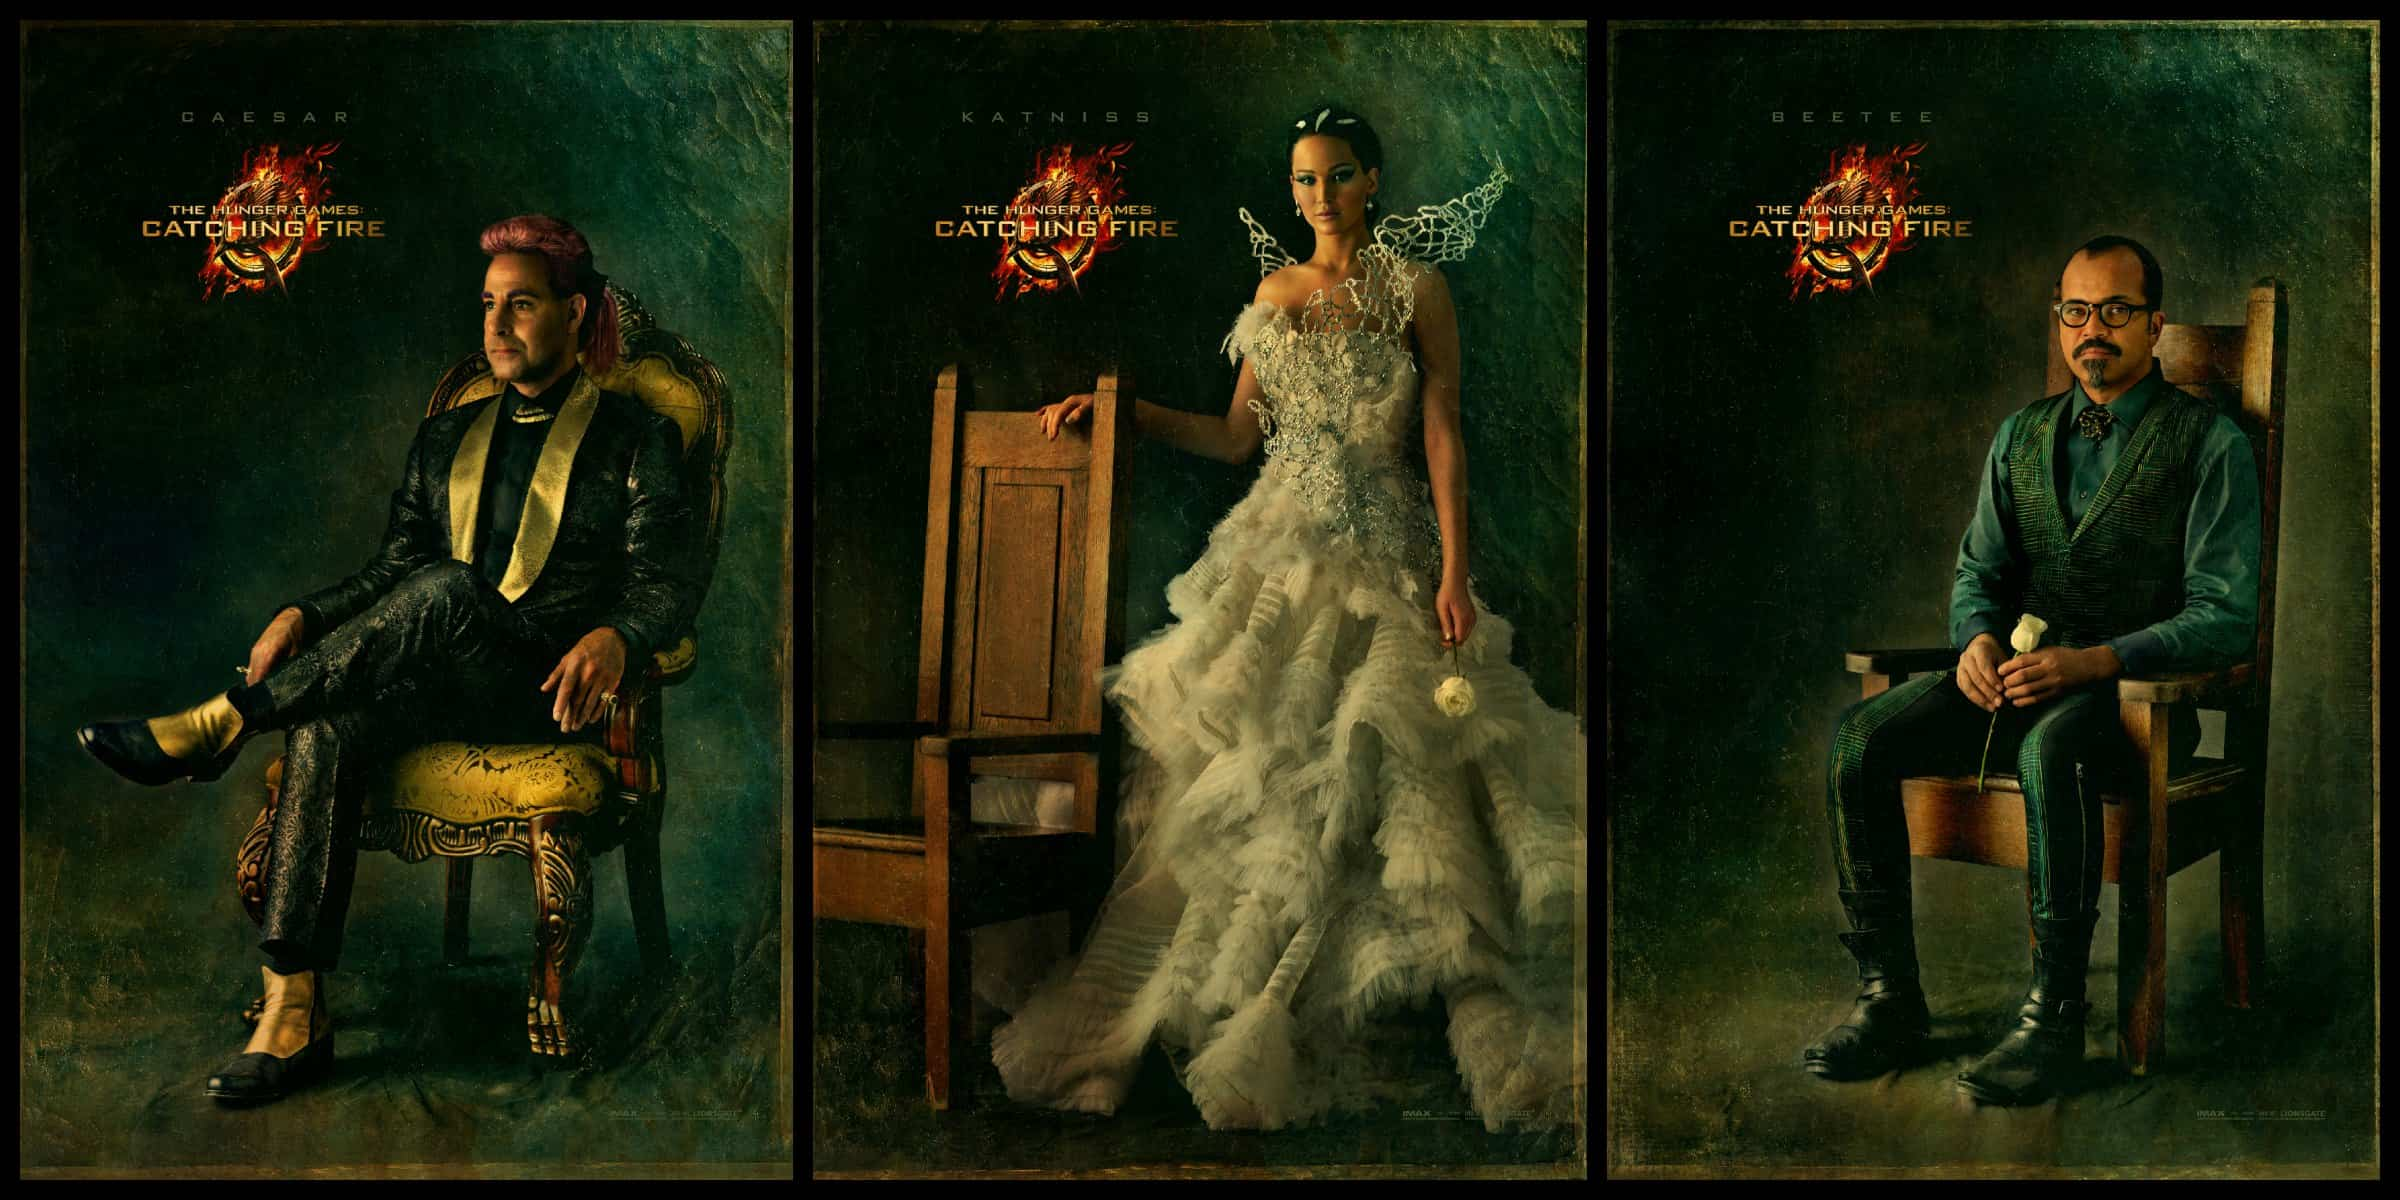 Sneak Peek at The Hungar Games Catching Fire Capitol Portraits! #TheSpark #CatchingFire